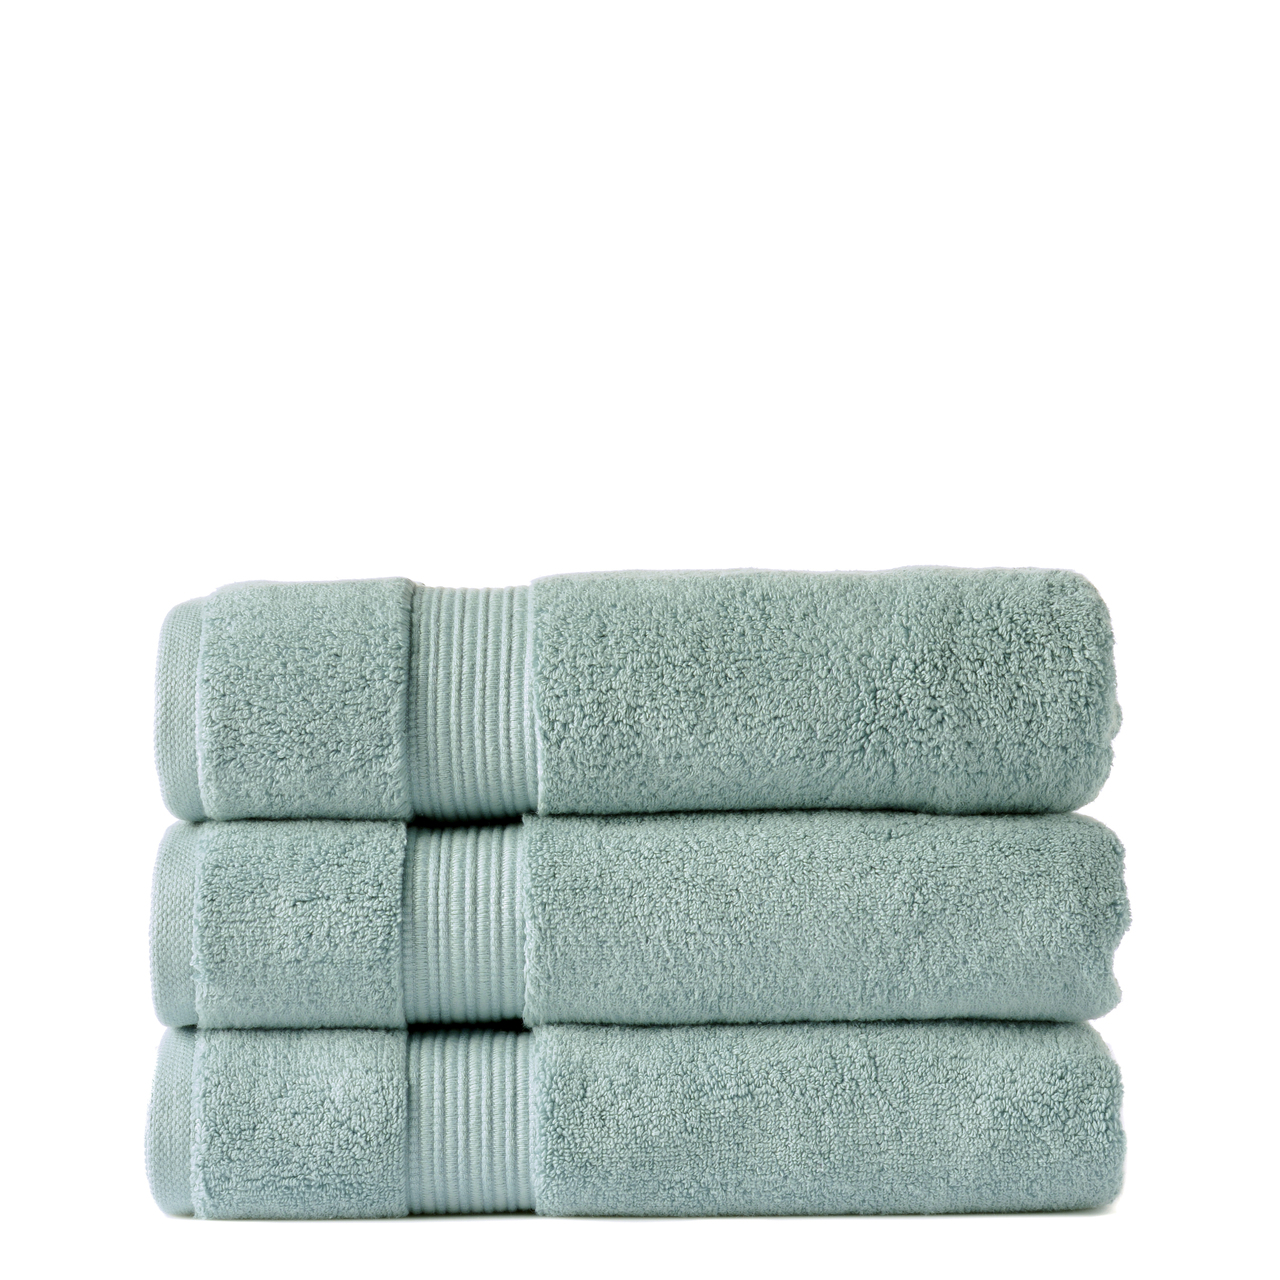 Our Zero Twist 650 gsm 100% cotton bath towels are soft and plush. They are colourfast and durable. The drying becomes more enhanced with every wash maintaing a soft and plush texture.  Colour Haze There are 10 beautiful colours to choose from all with matching accessories.